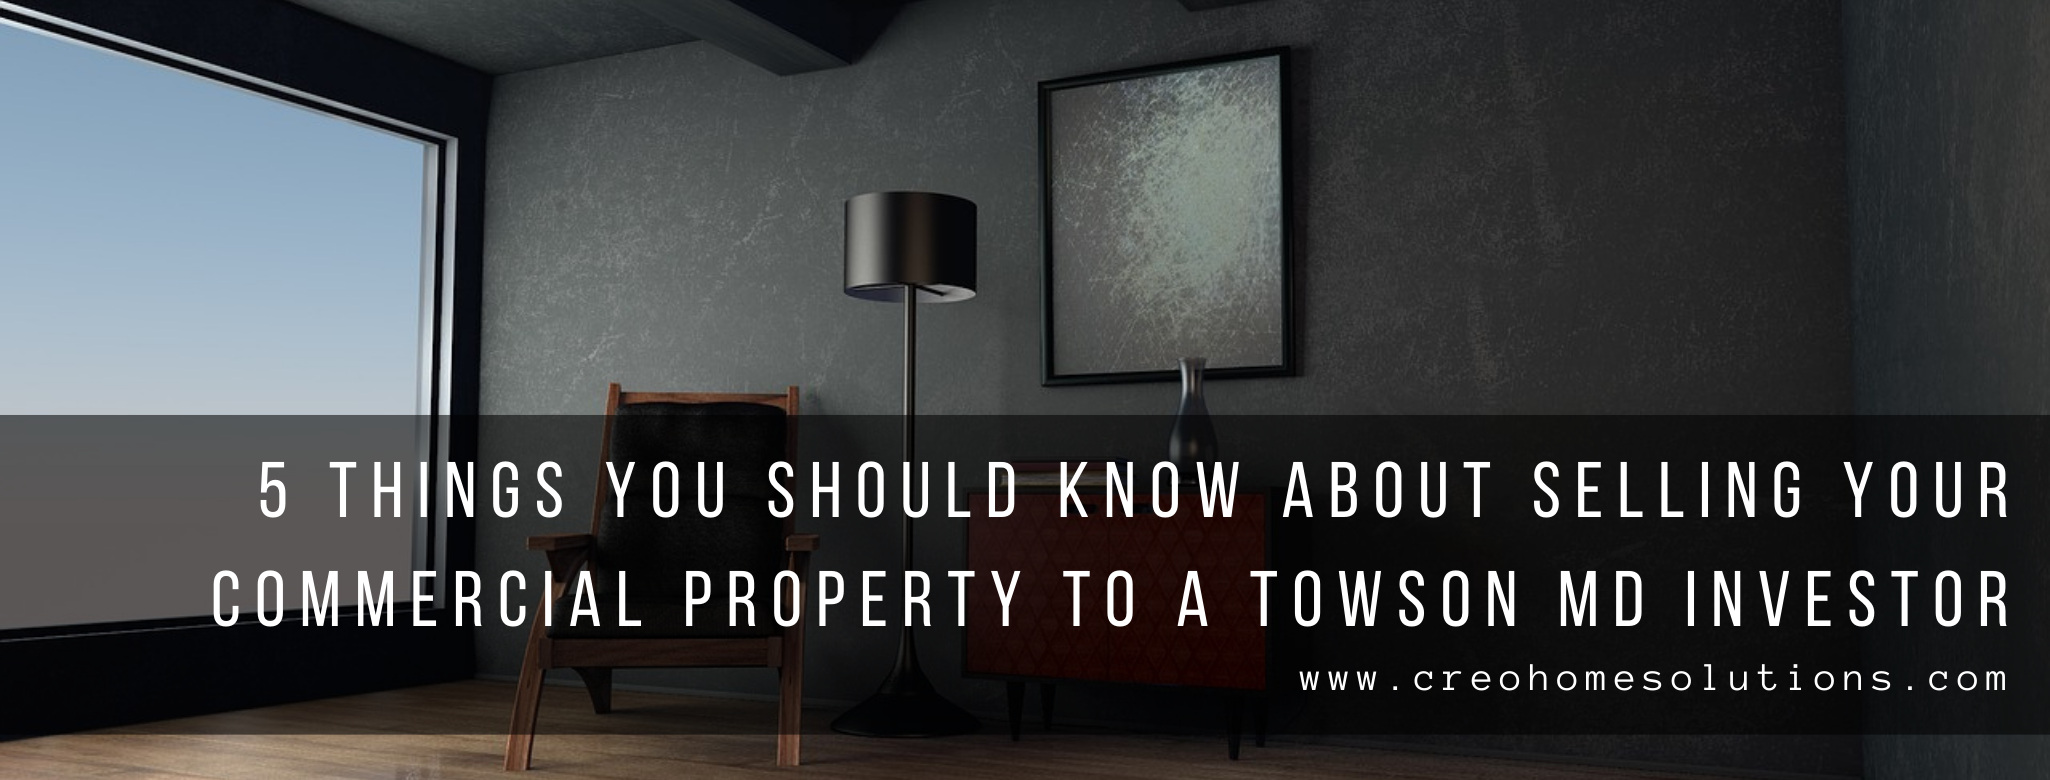 We buy properties in Towson MD